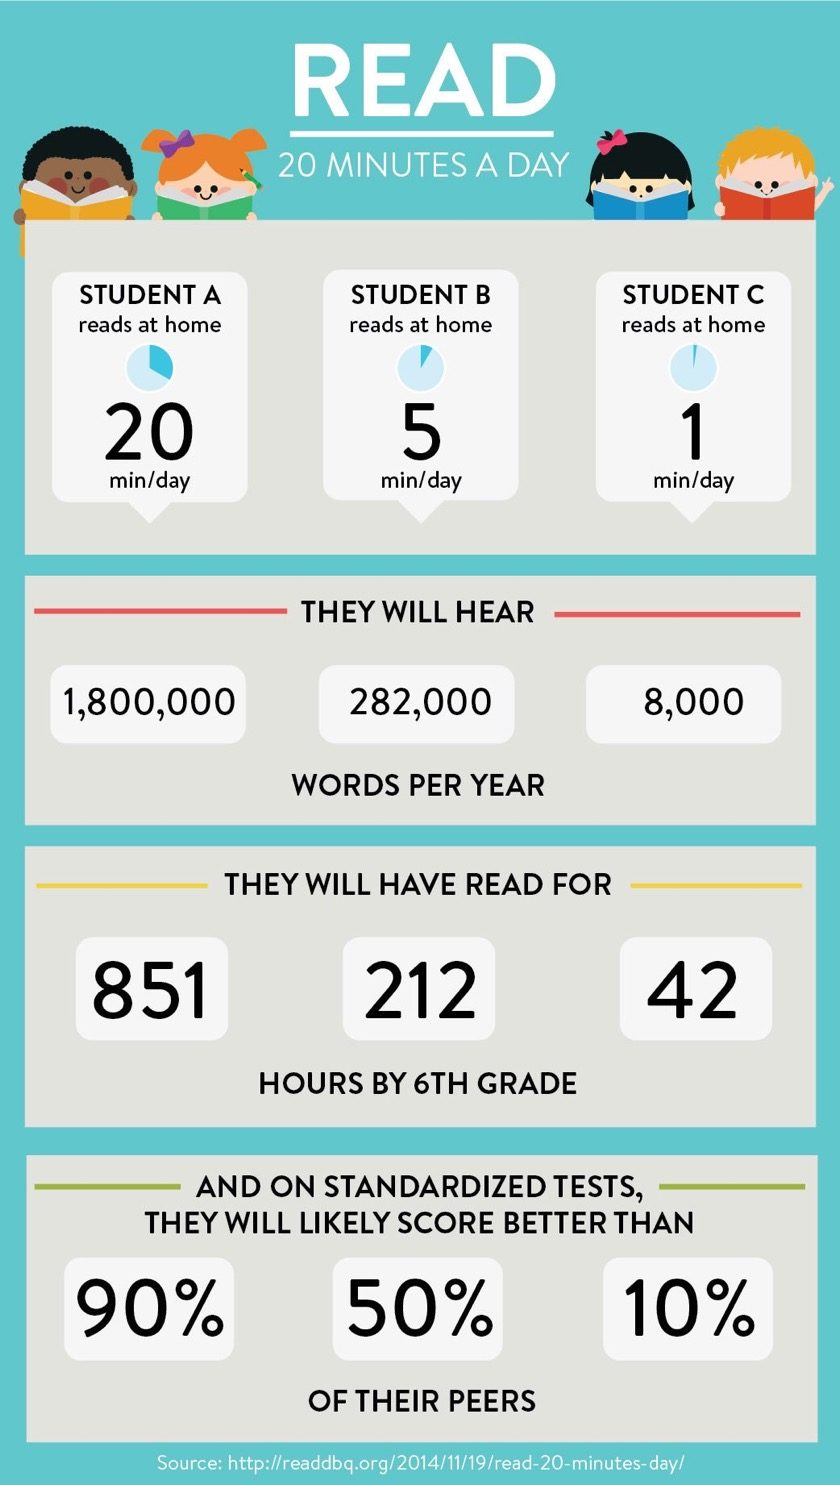 Let's compare students who read 20, 5 and 1 minute per day...